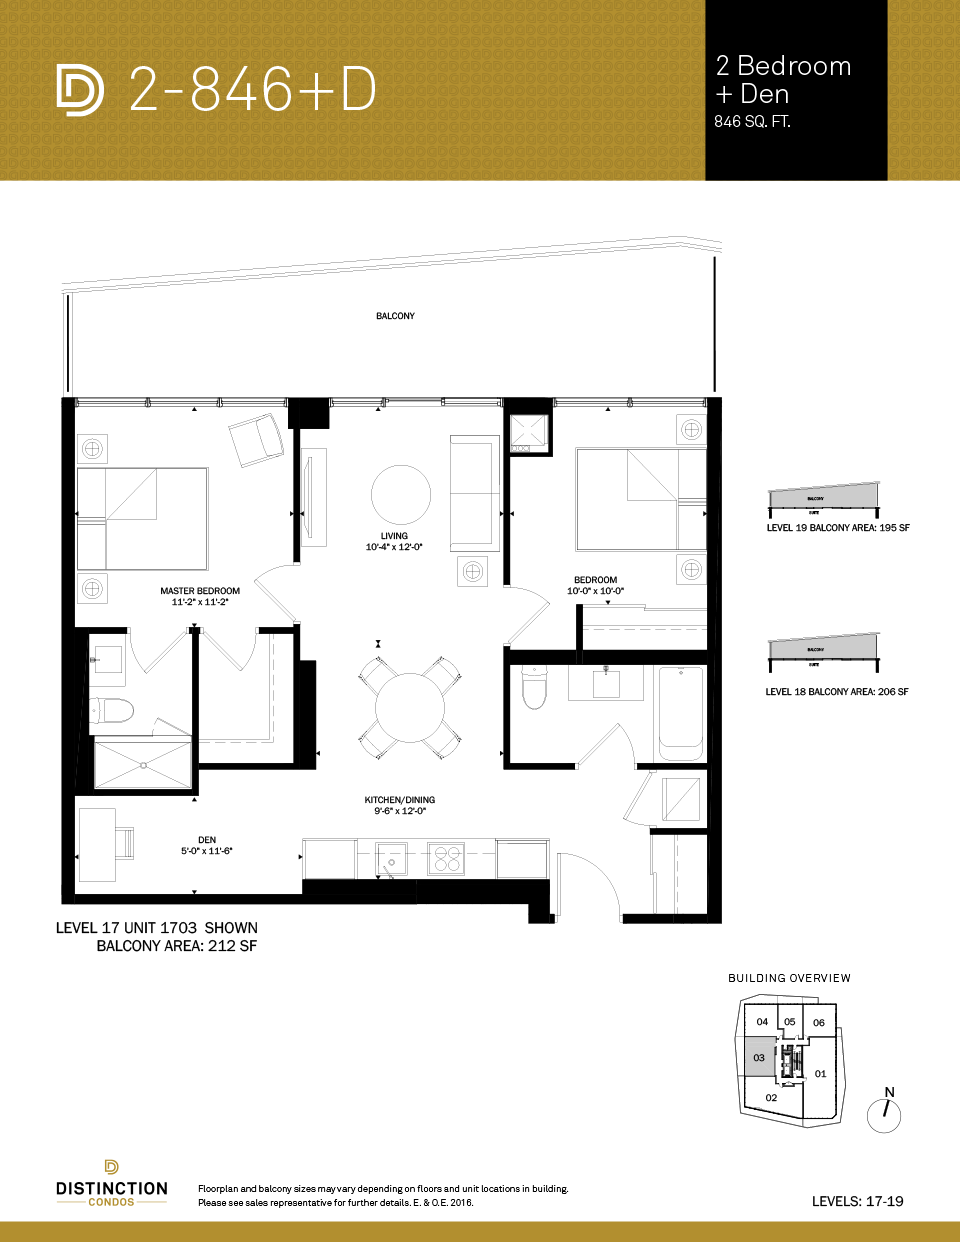 distinction condos floorplan 2-846d